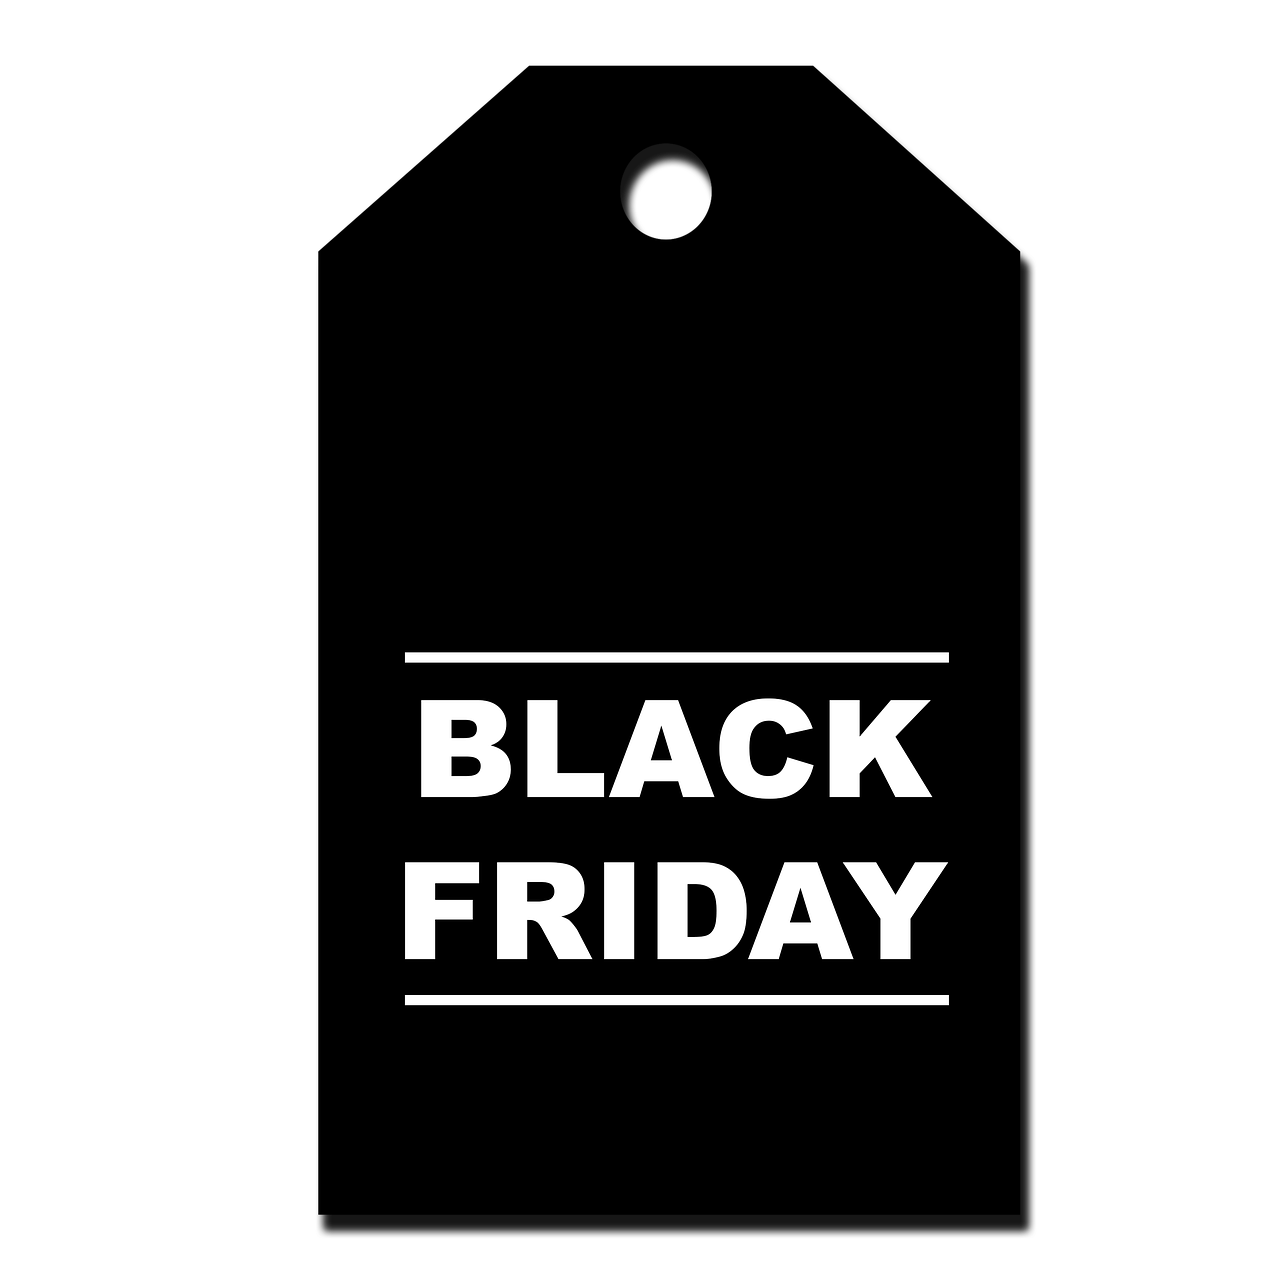 black-friday-4571831_1280